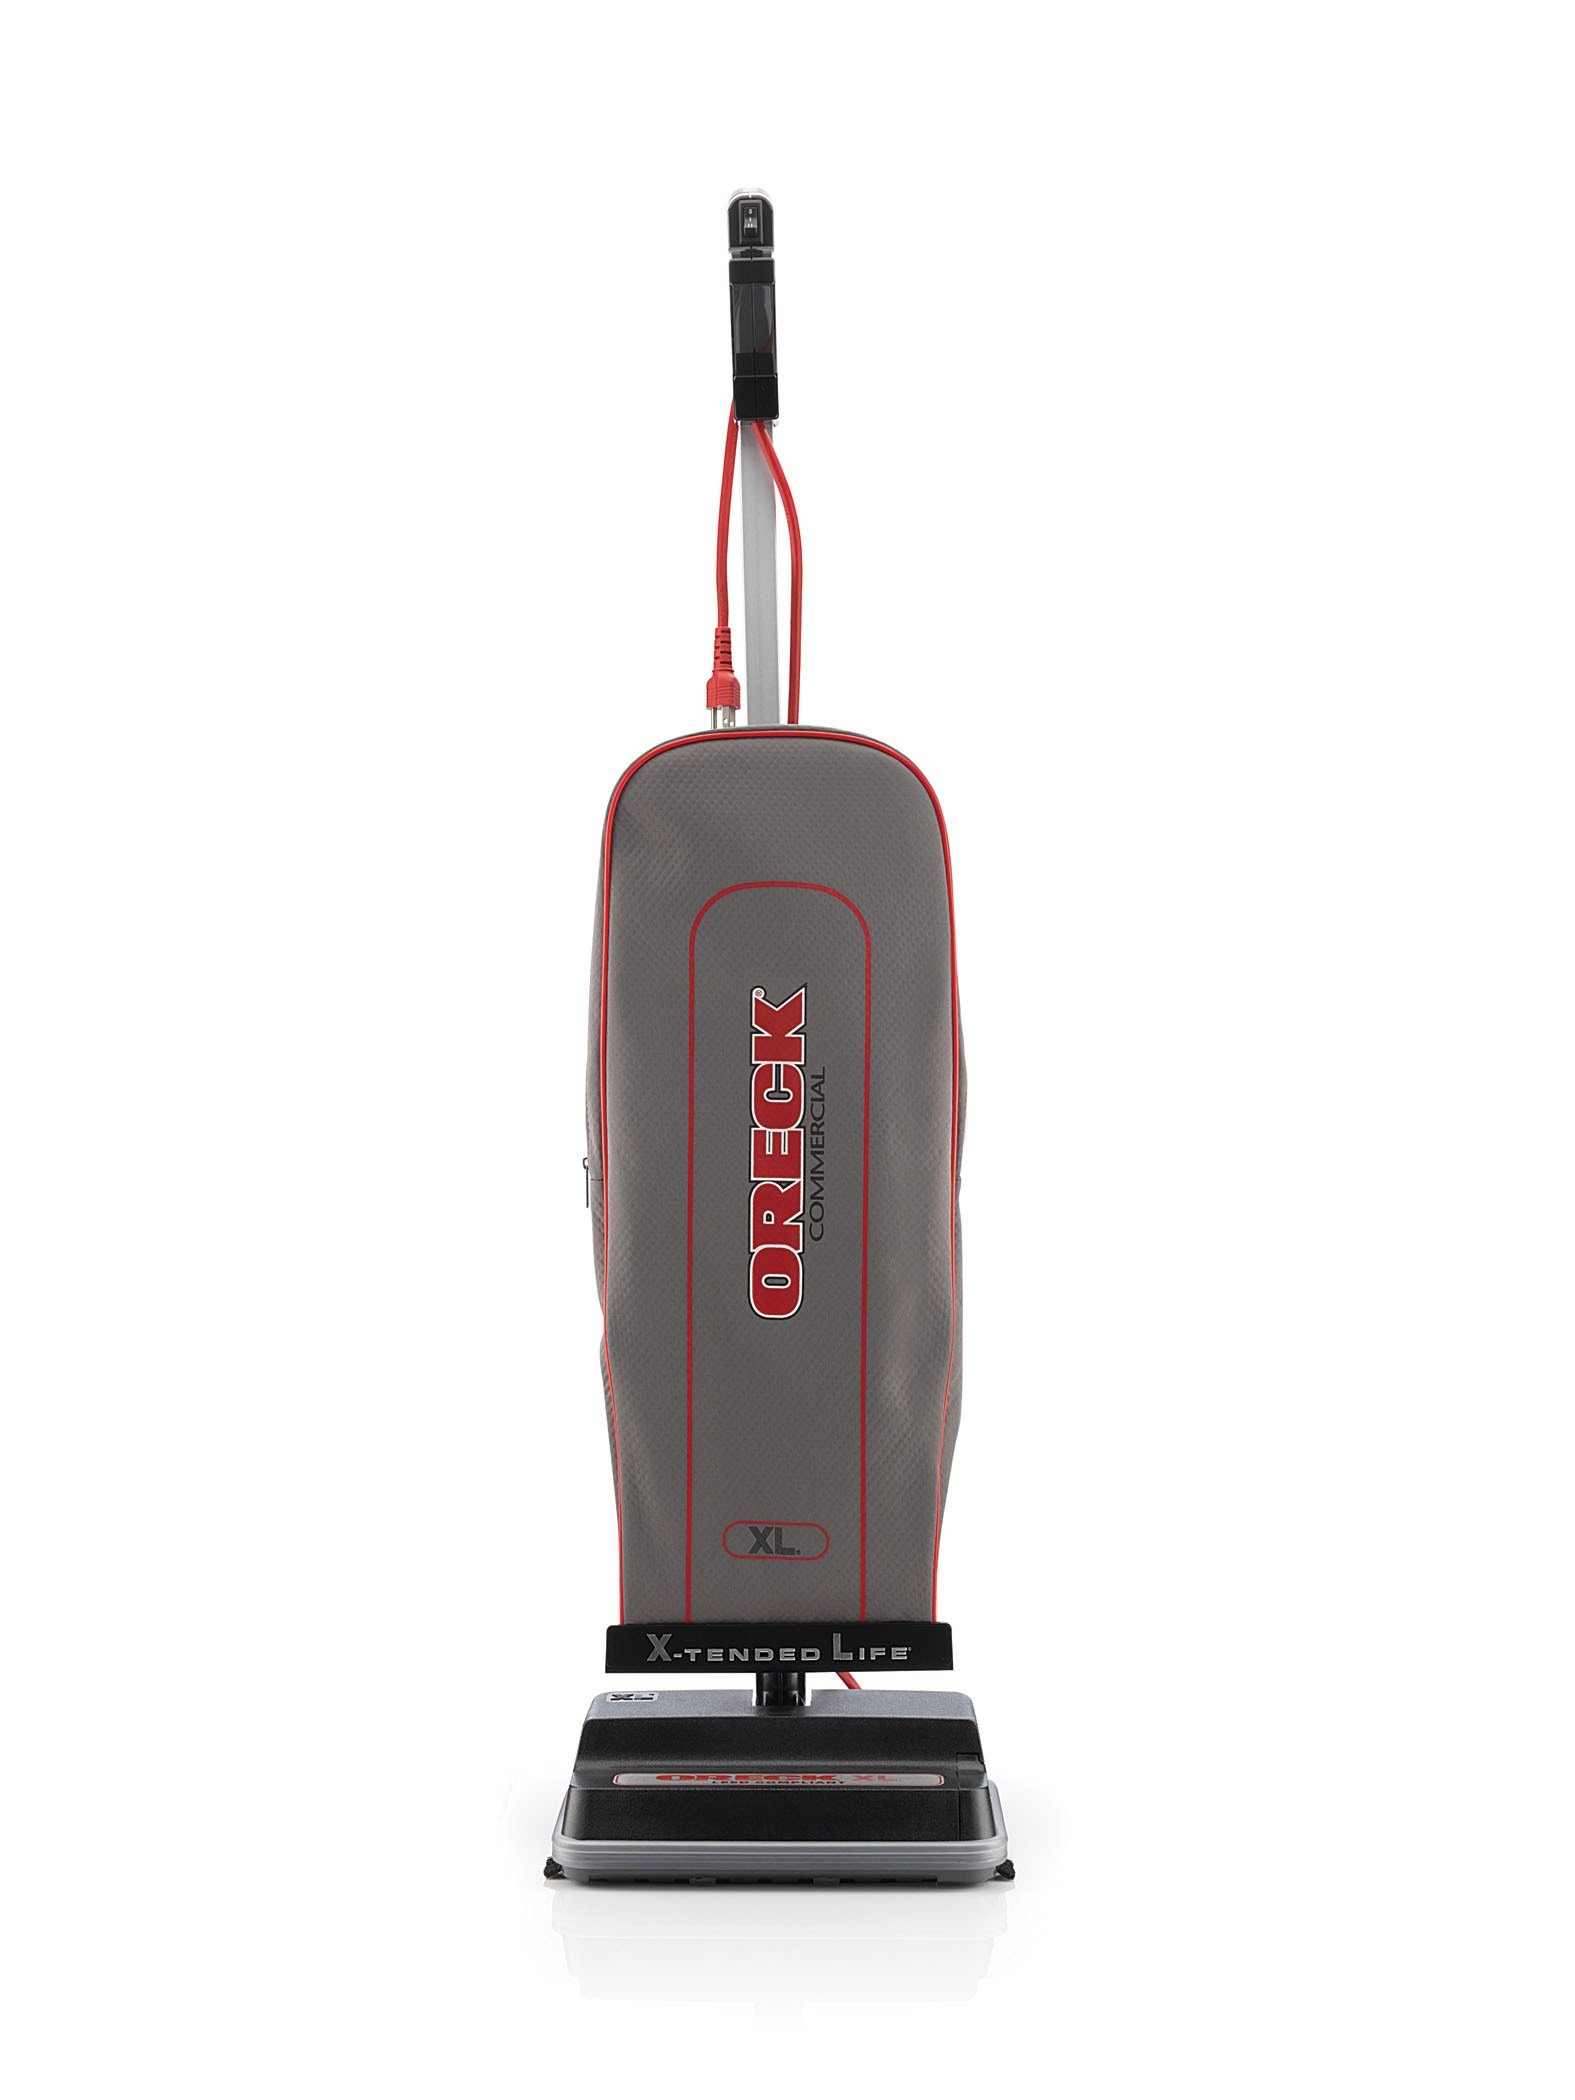 Oreck Commercial U2000RB2L-1 LEED-Compliant Upright Vacuum by Oreck Commercial